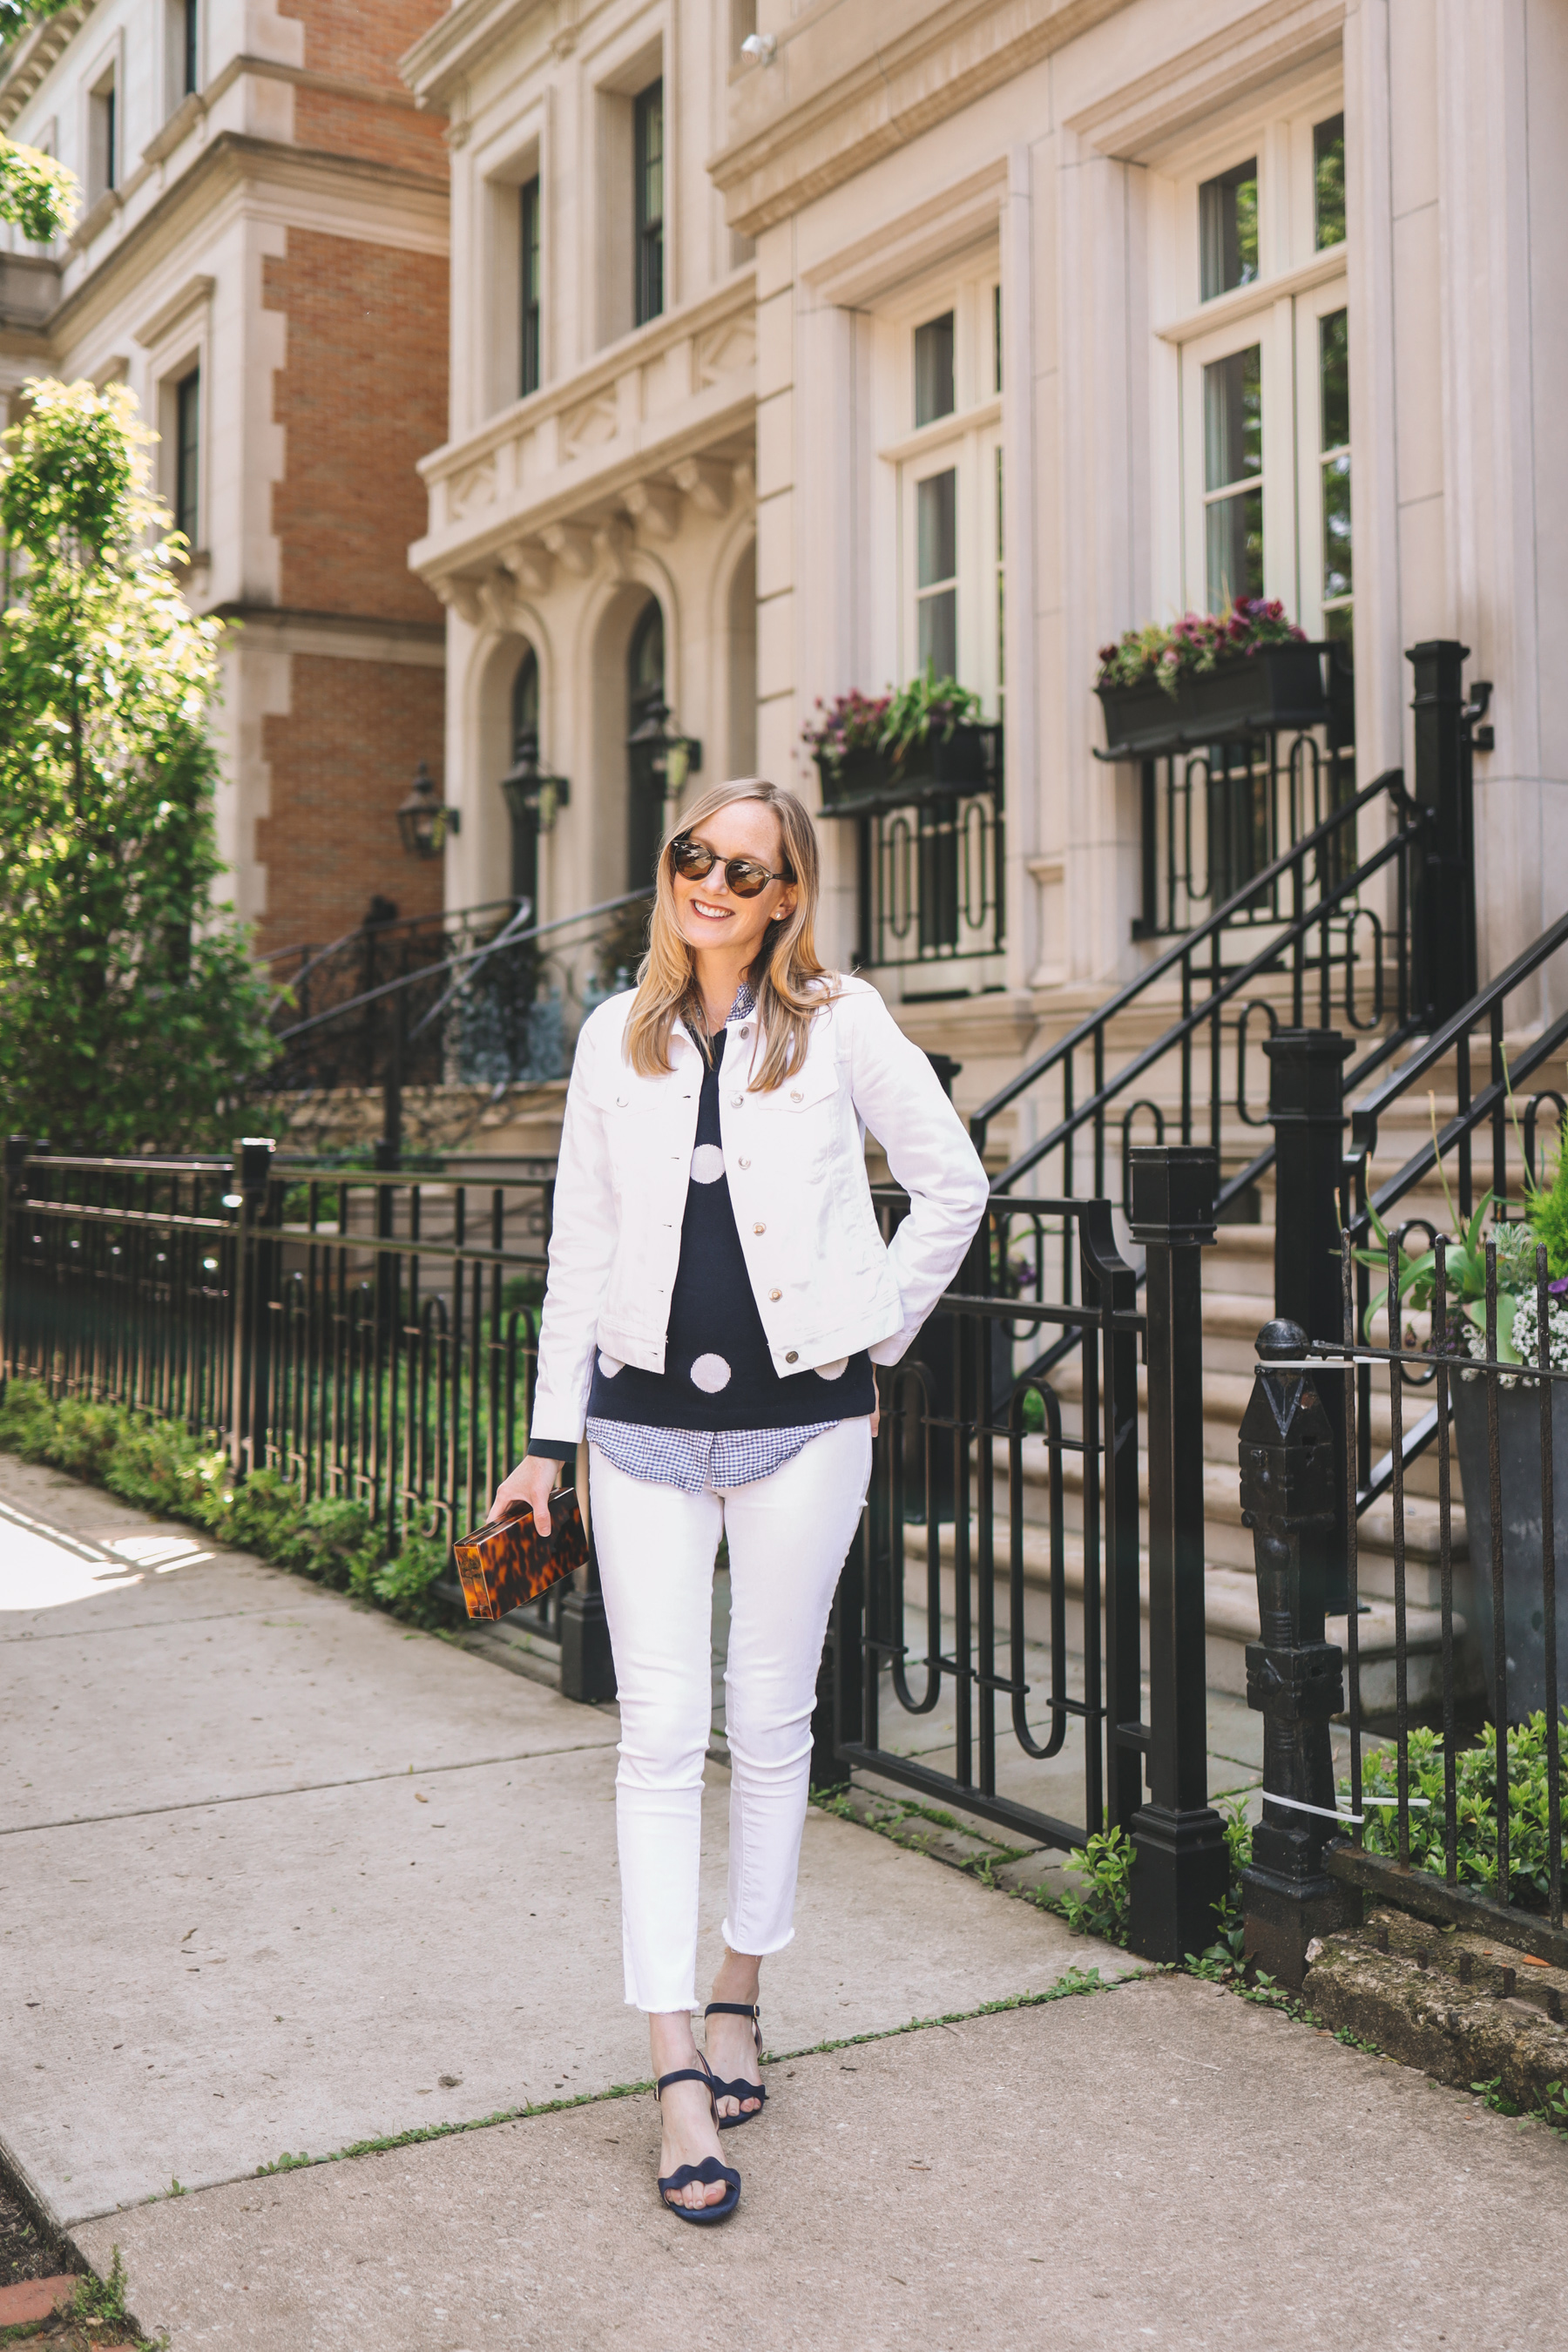 Kelly Larkin's outfit details: Patricia Green Scalloped Sandals/ Tortoise Clutch / Favorite White Jeans / Navy Polka Dot Sweater / Tortoise Clutch / Gingham Button-Down